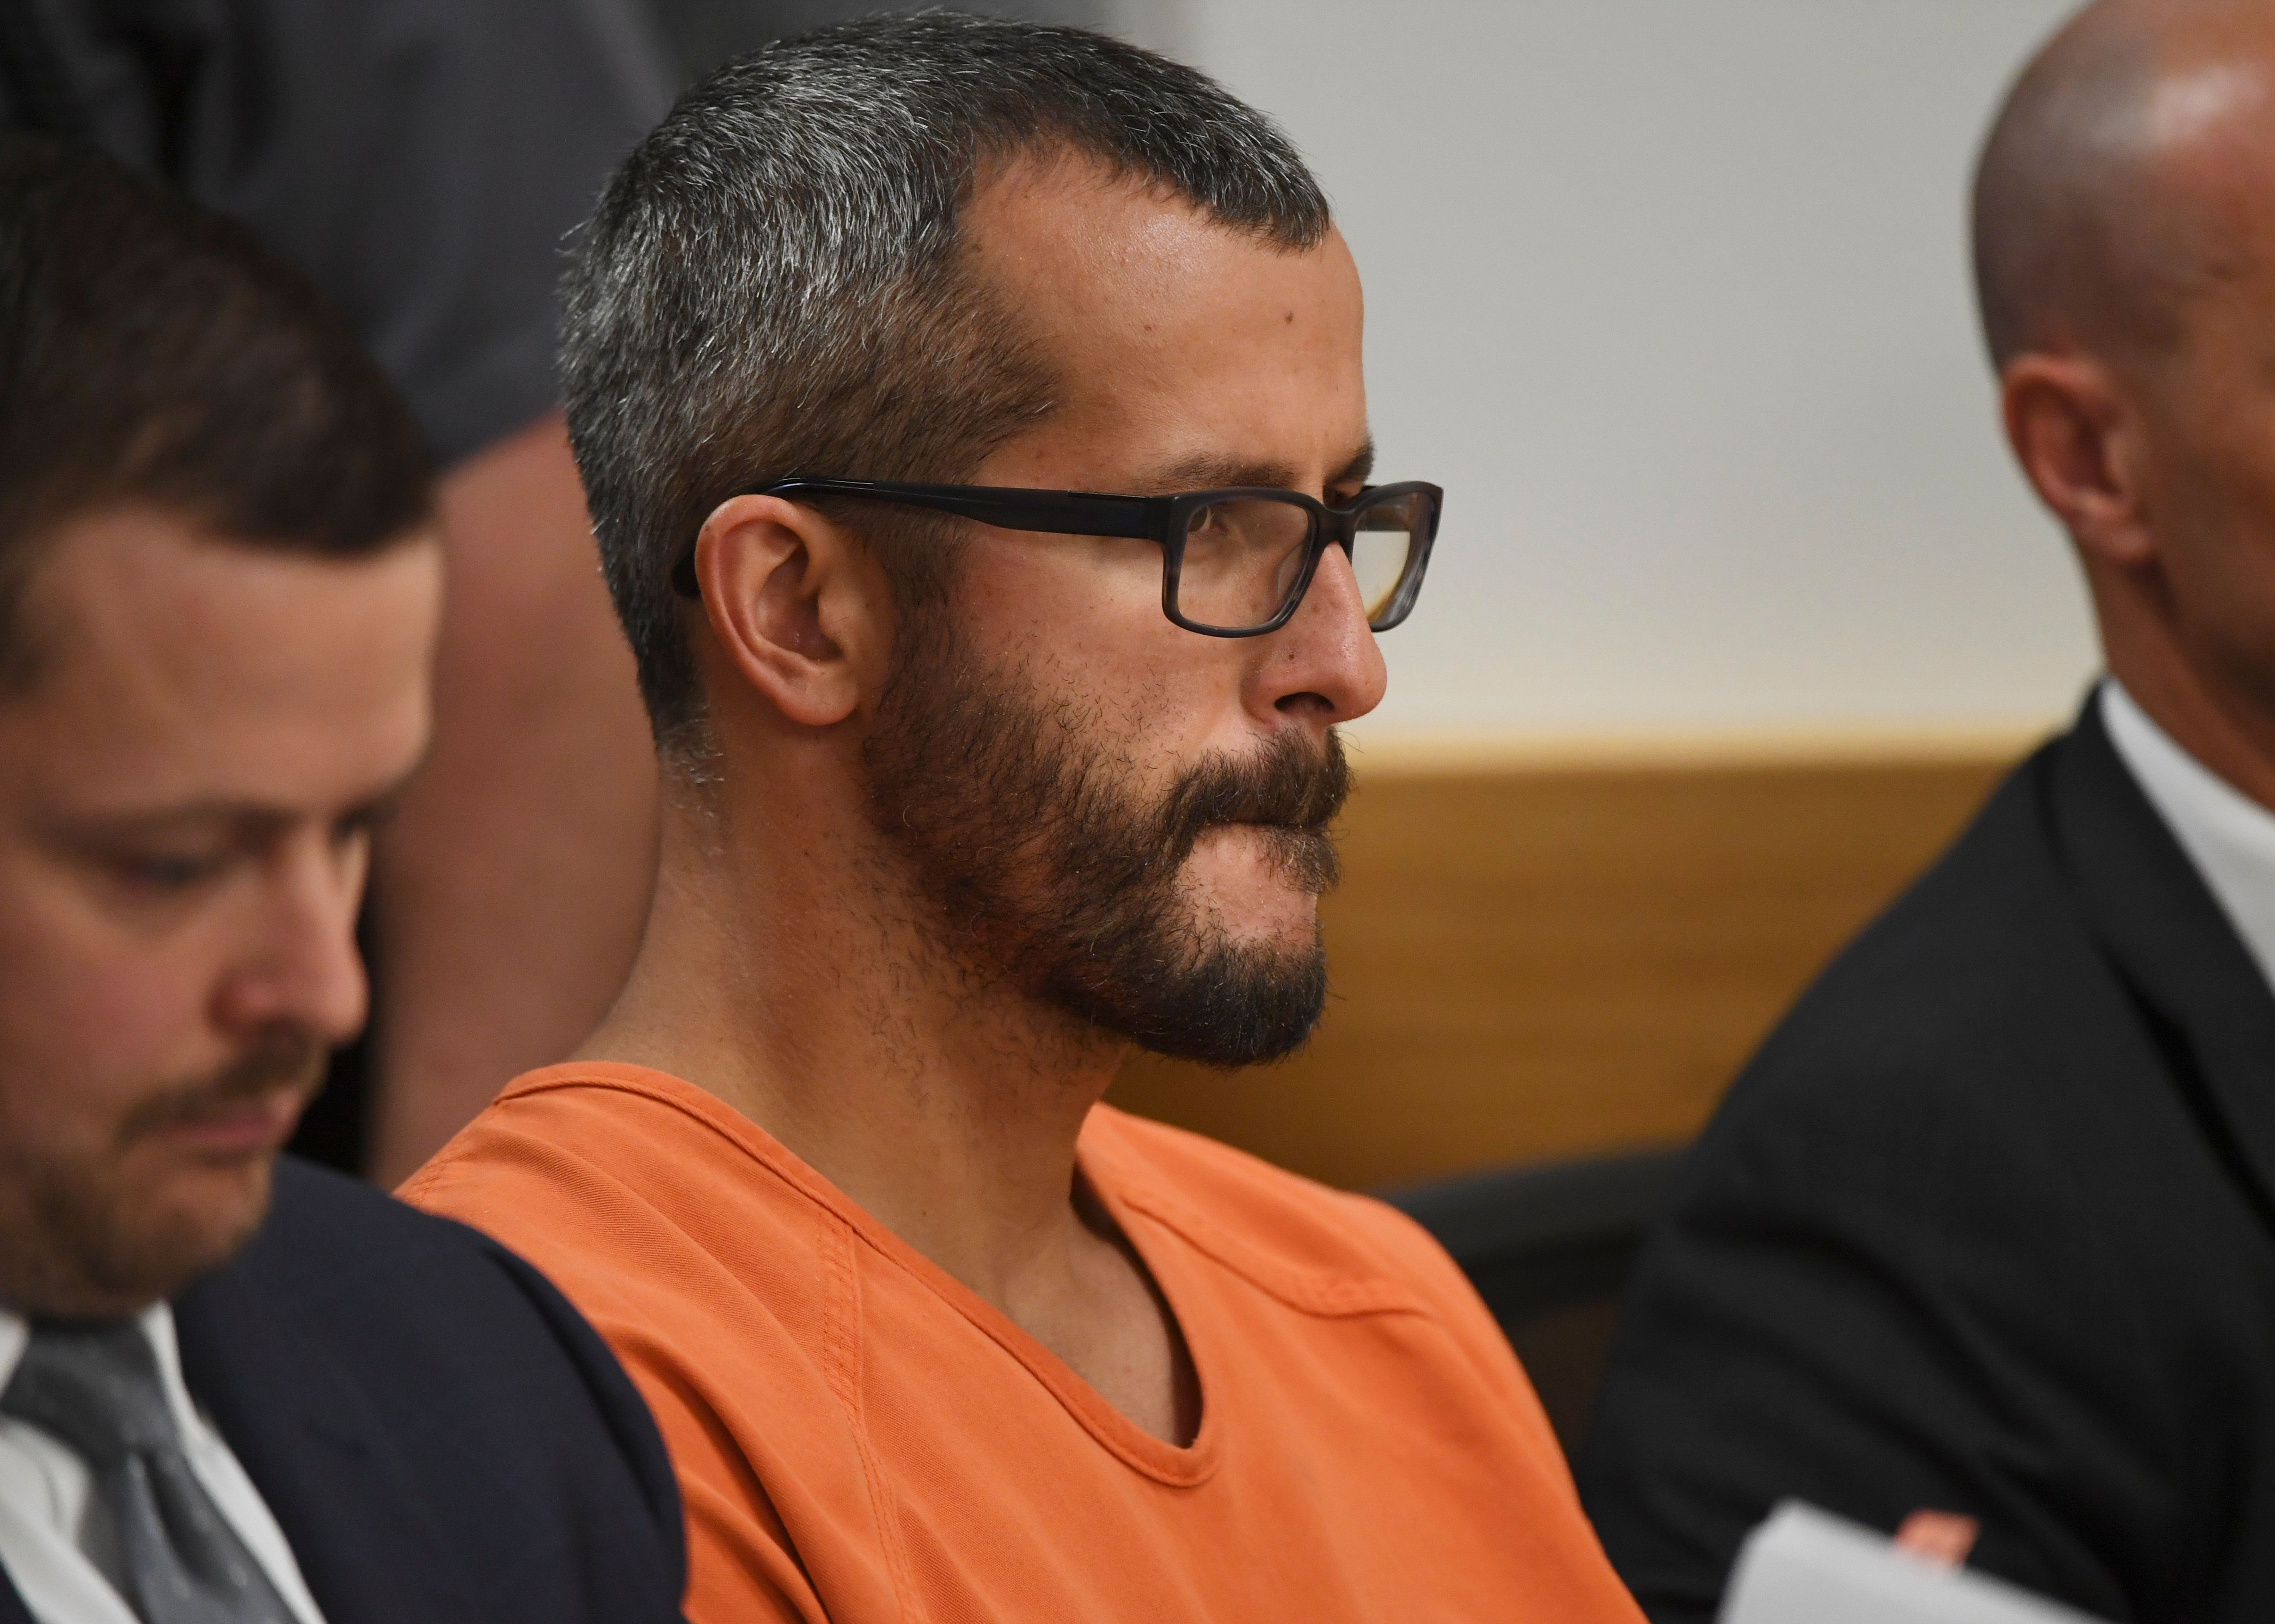 Chris Watts Sentenced To Life In Prison For Murdering His Pregnant Wife, 2